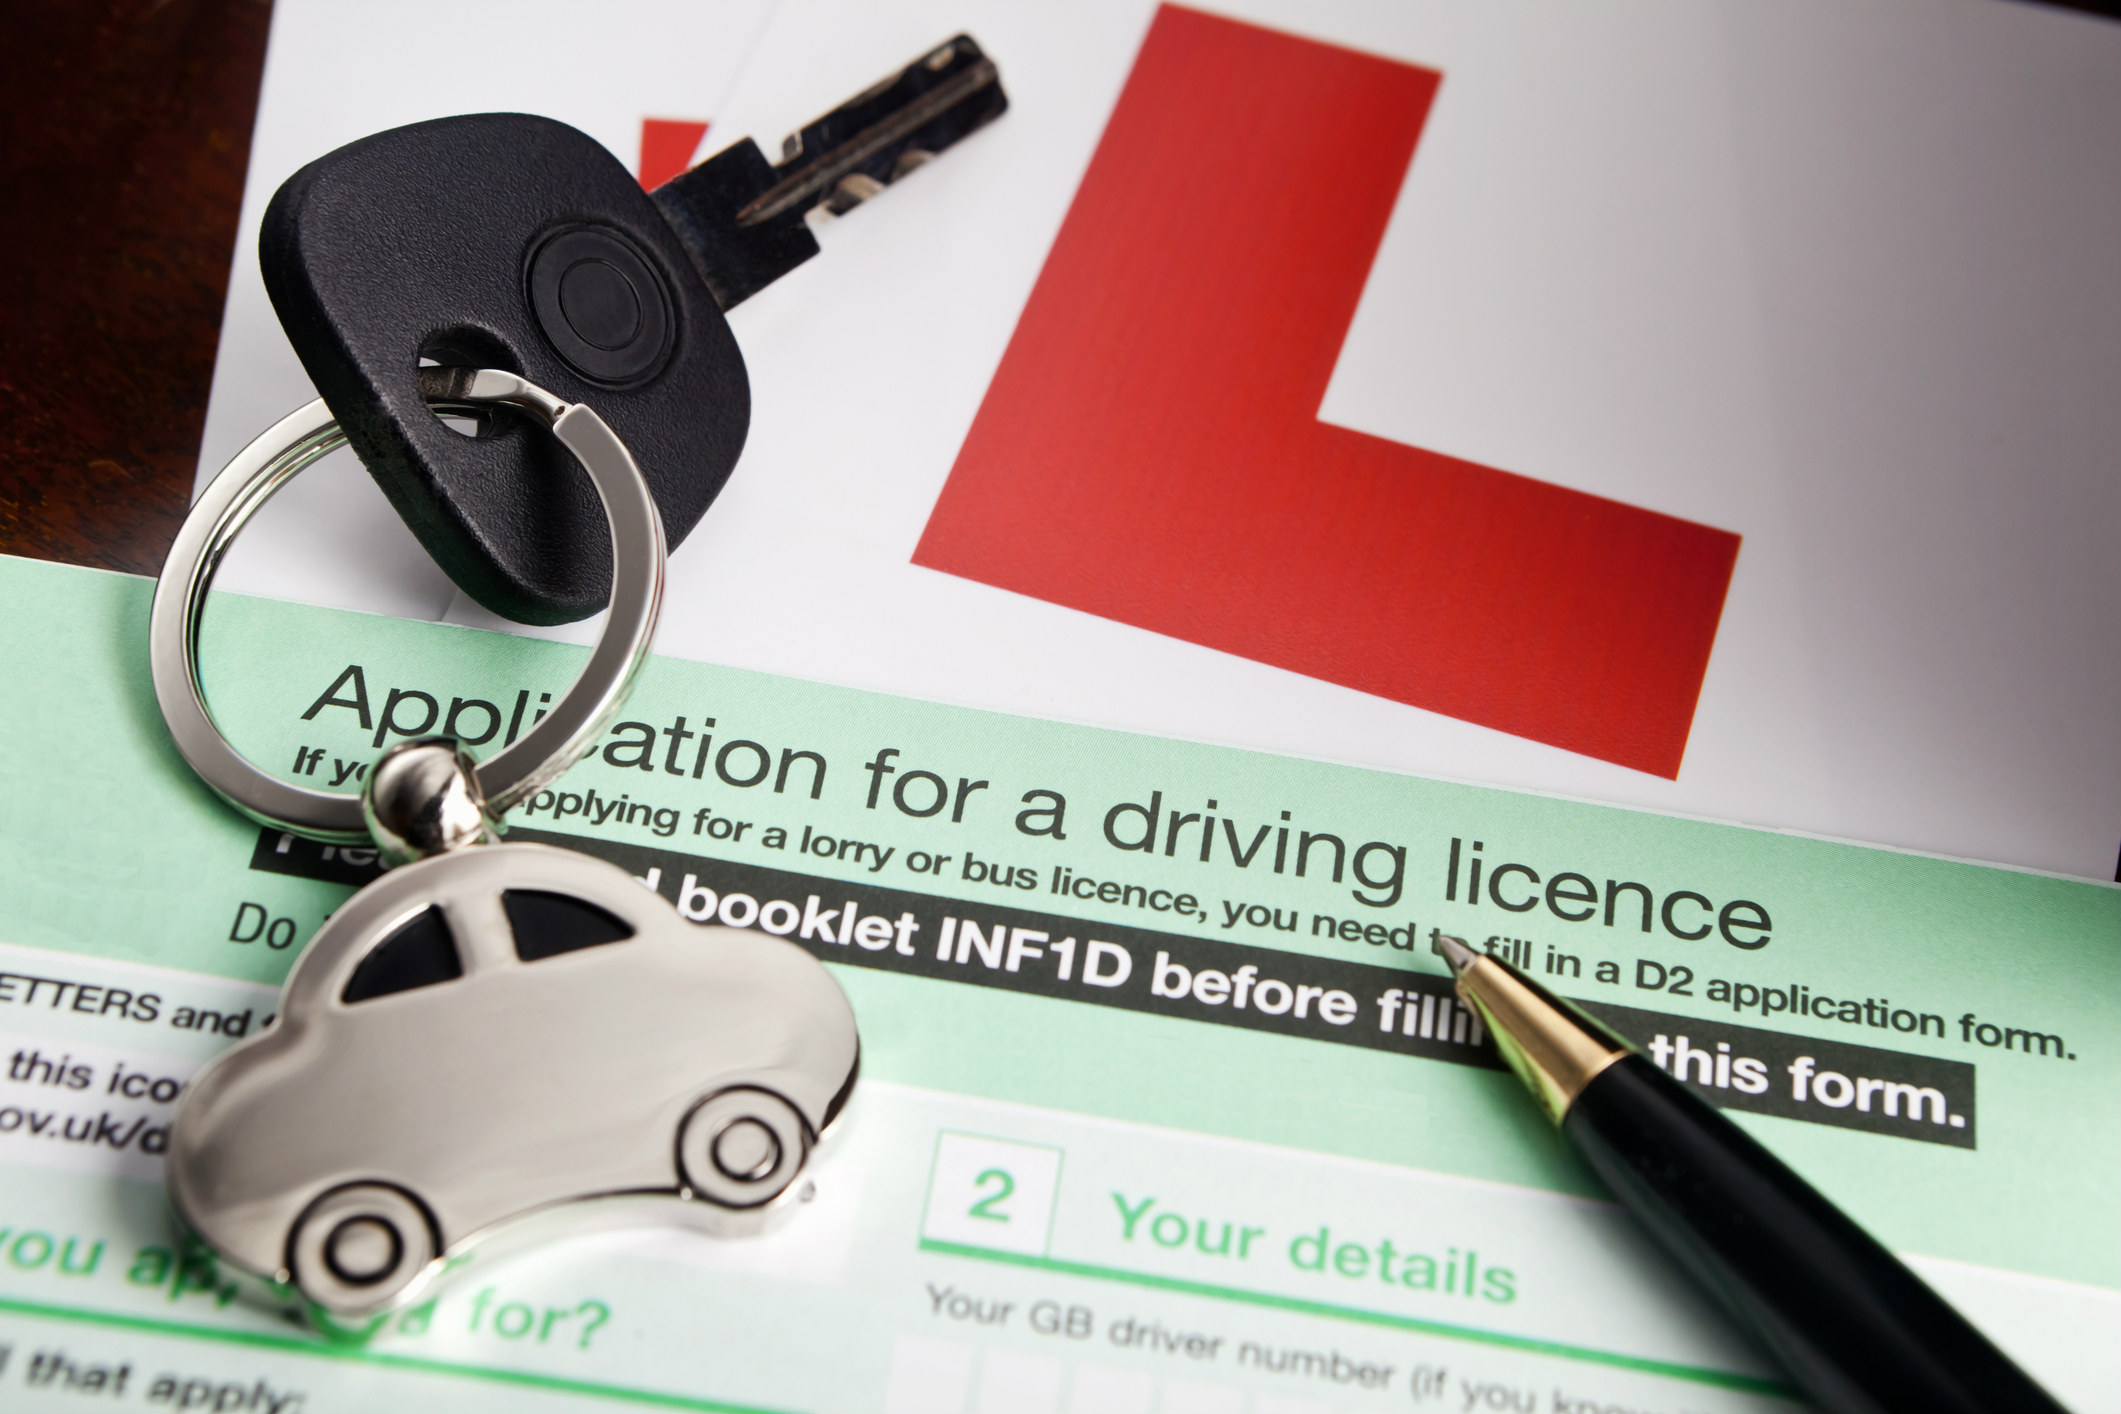 Where to take your driving test if you want to pass first time